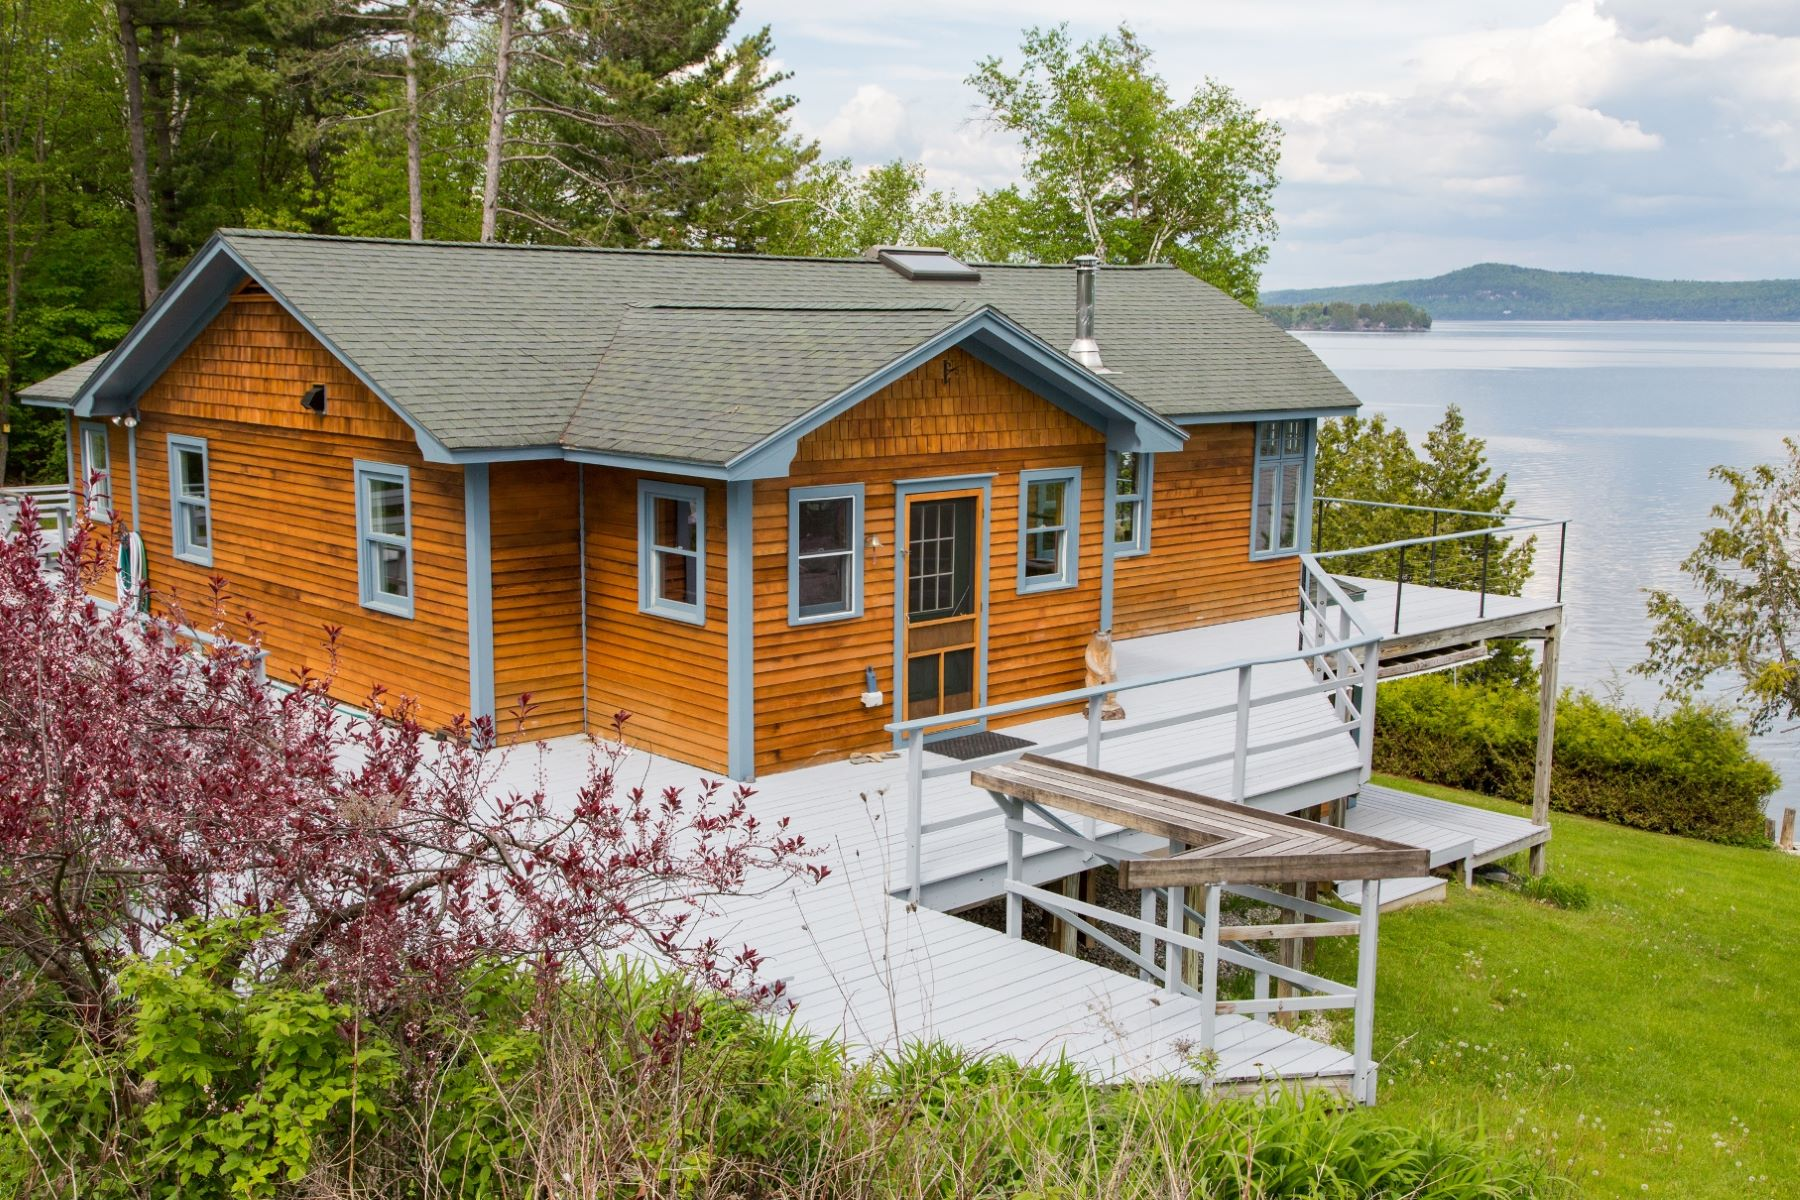 Casa Unifamiliar por un Venta en Lake Champlain Vermont Renovated Cottage Home 58 Richards South Hero, Vermont, 05486 Estados Unidos